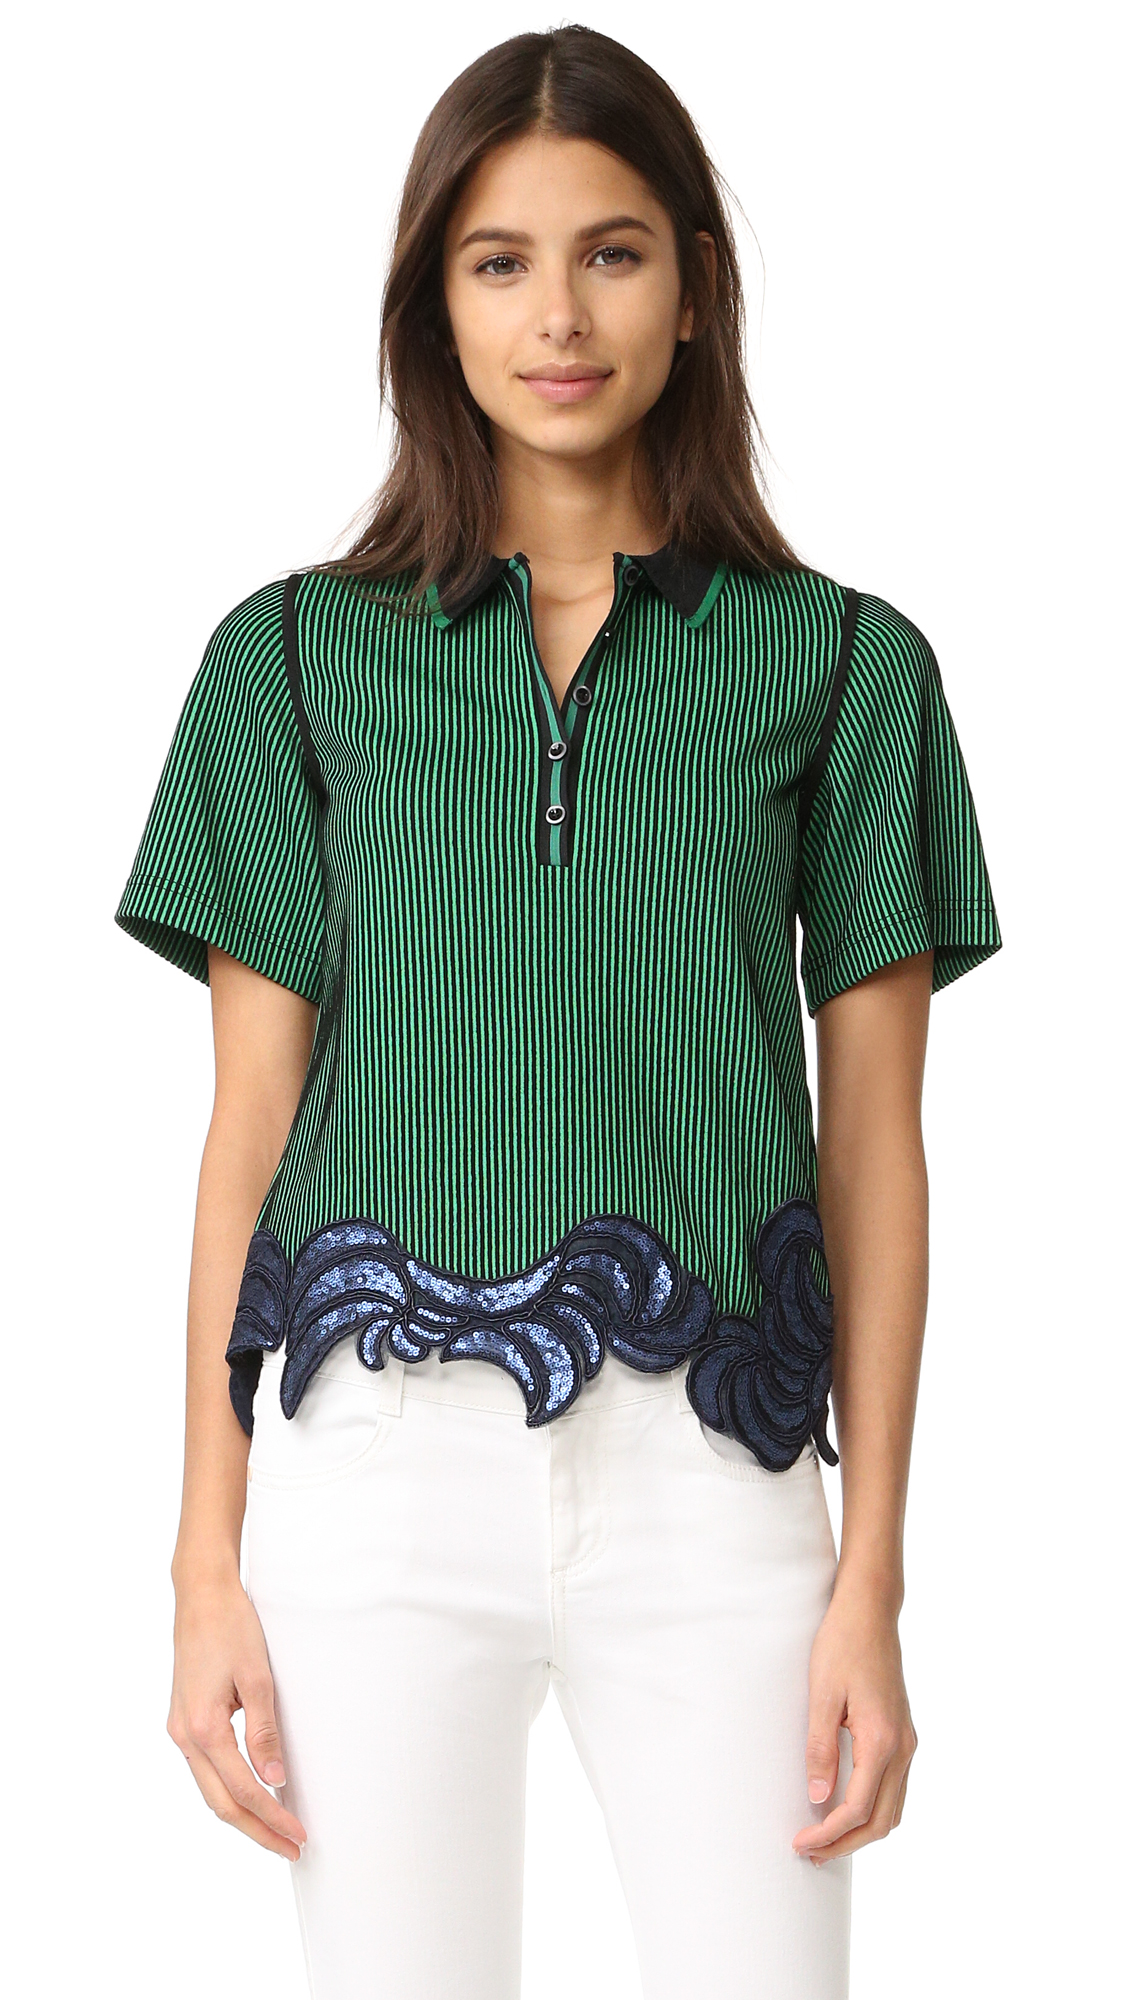 3.1 Phillip Lim Embroidered Polo Tee - Green Black at Shopbop